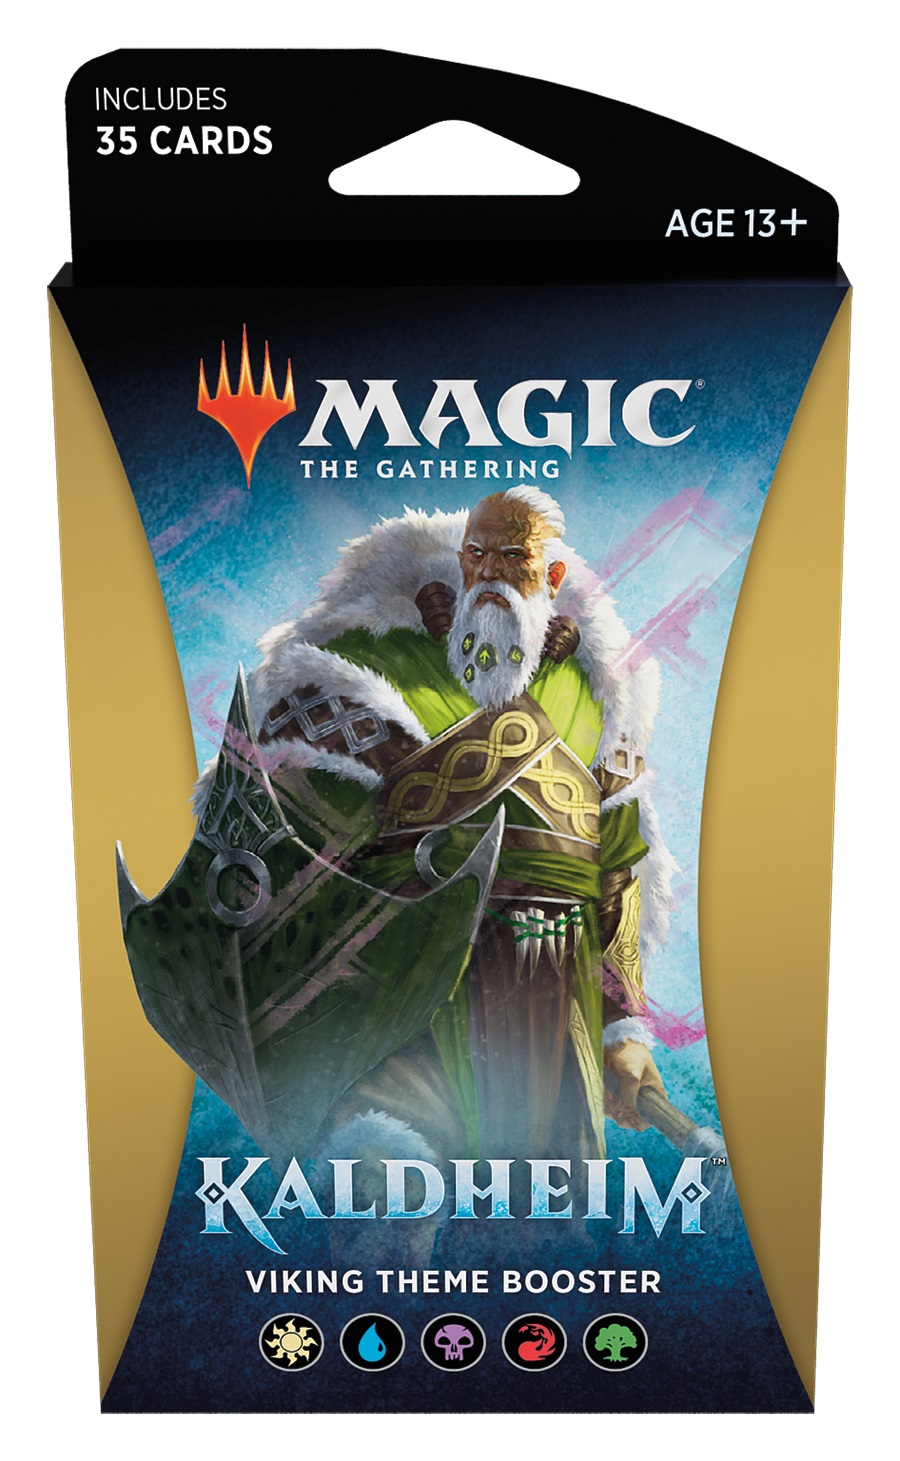 Kaldheim Theme Booster - Viking